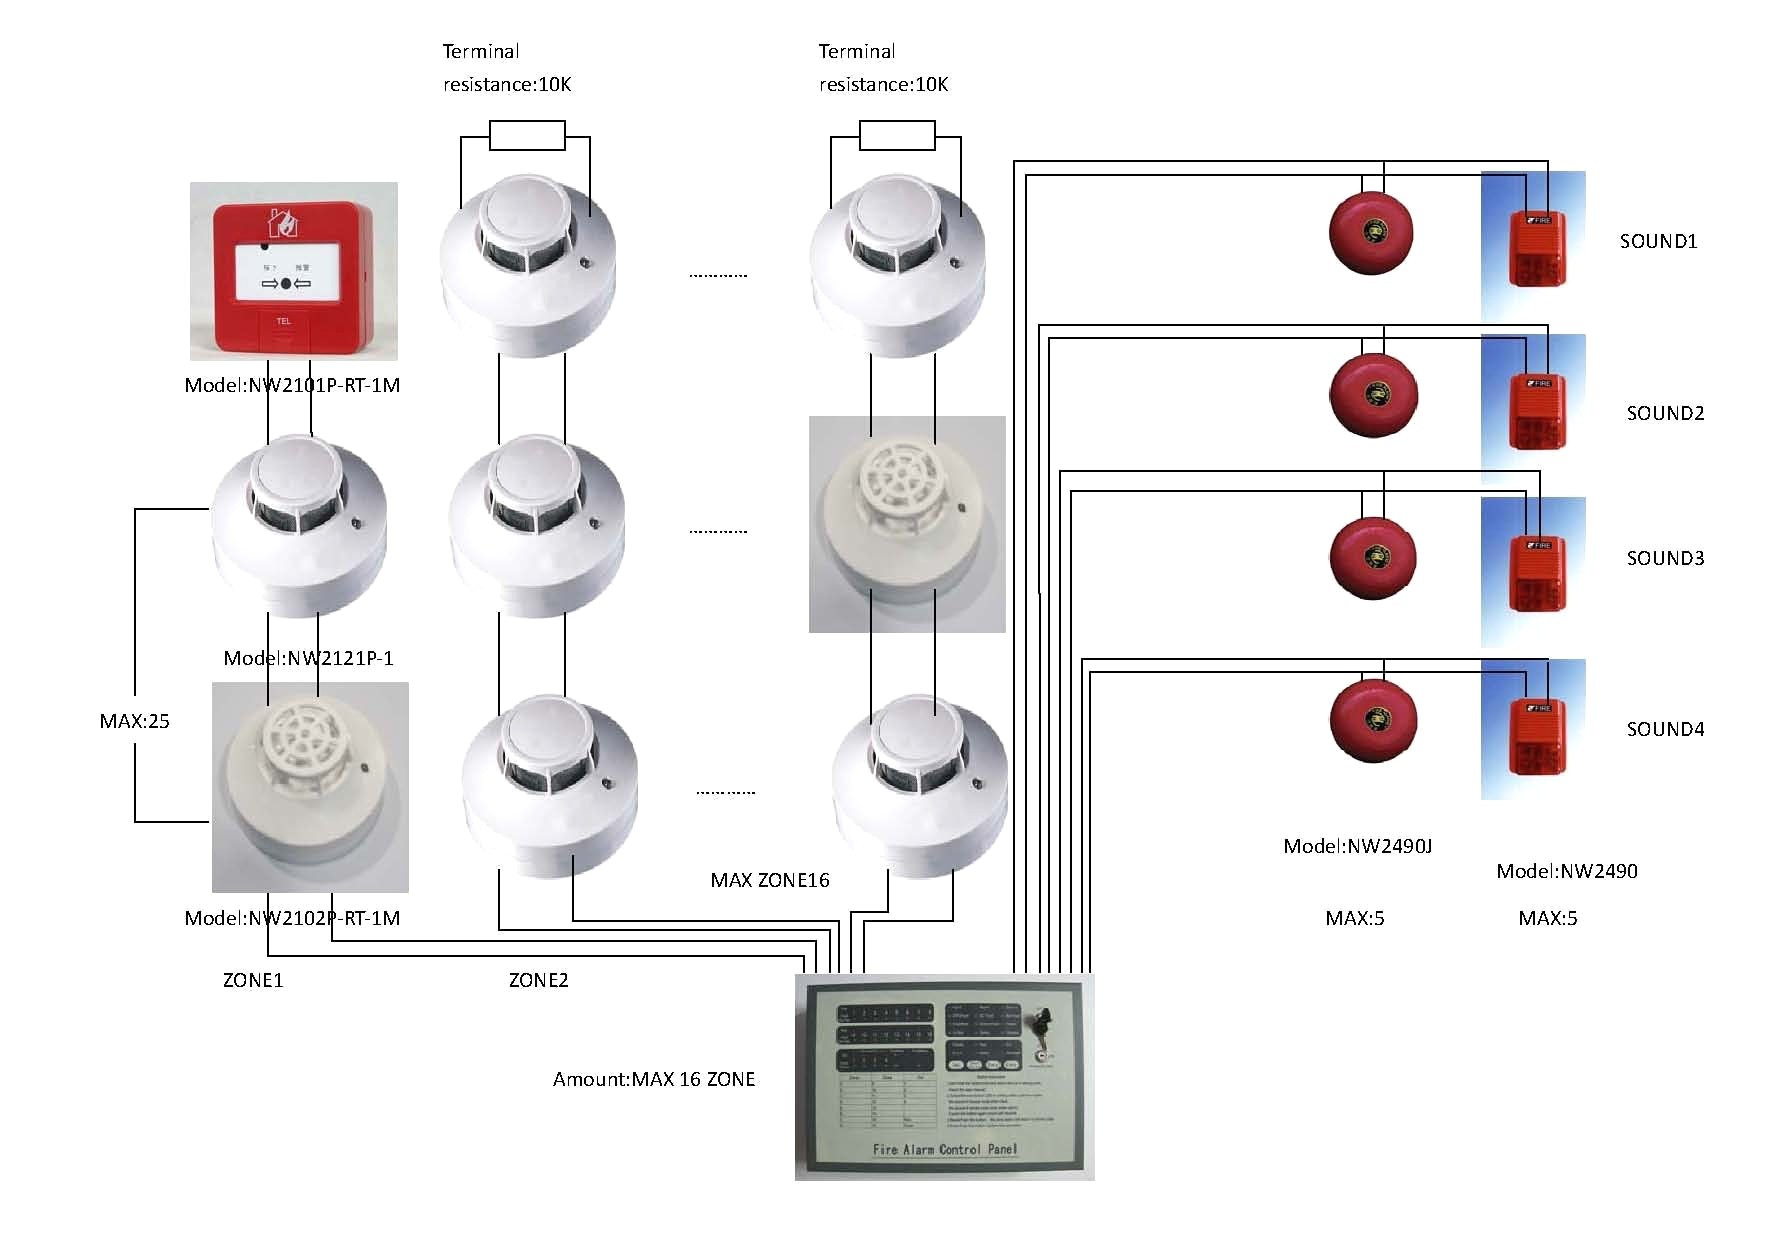 notifier addressable smoke detector wiring diagram leviton 3 way switch fire alarm library